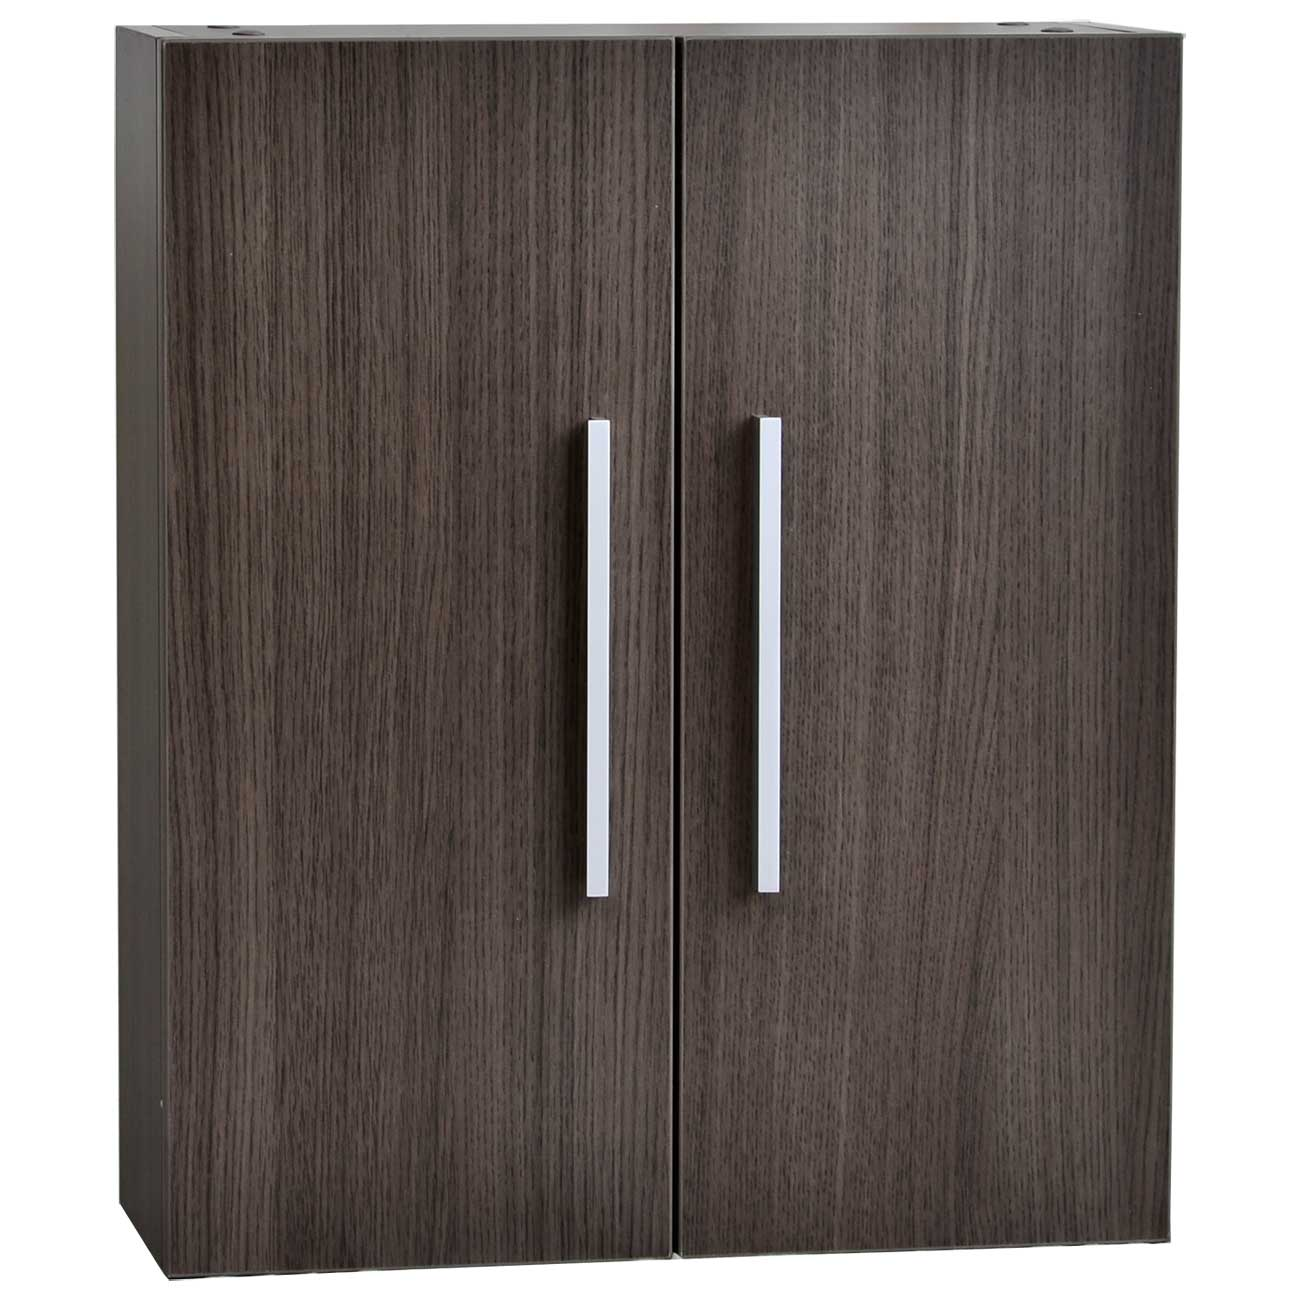 Buy Medicine Cabinet Grey Oak 20.5 in. W x 24.4 in. H TN-T520-SC ...